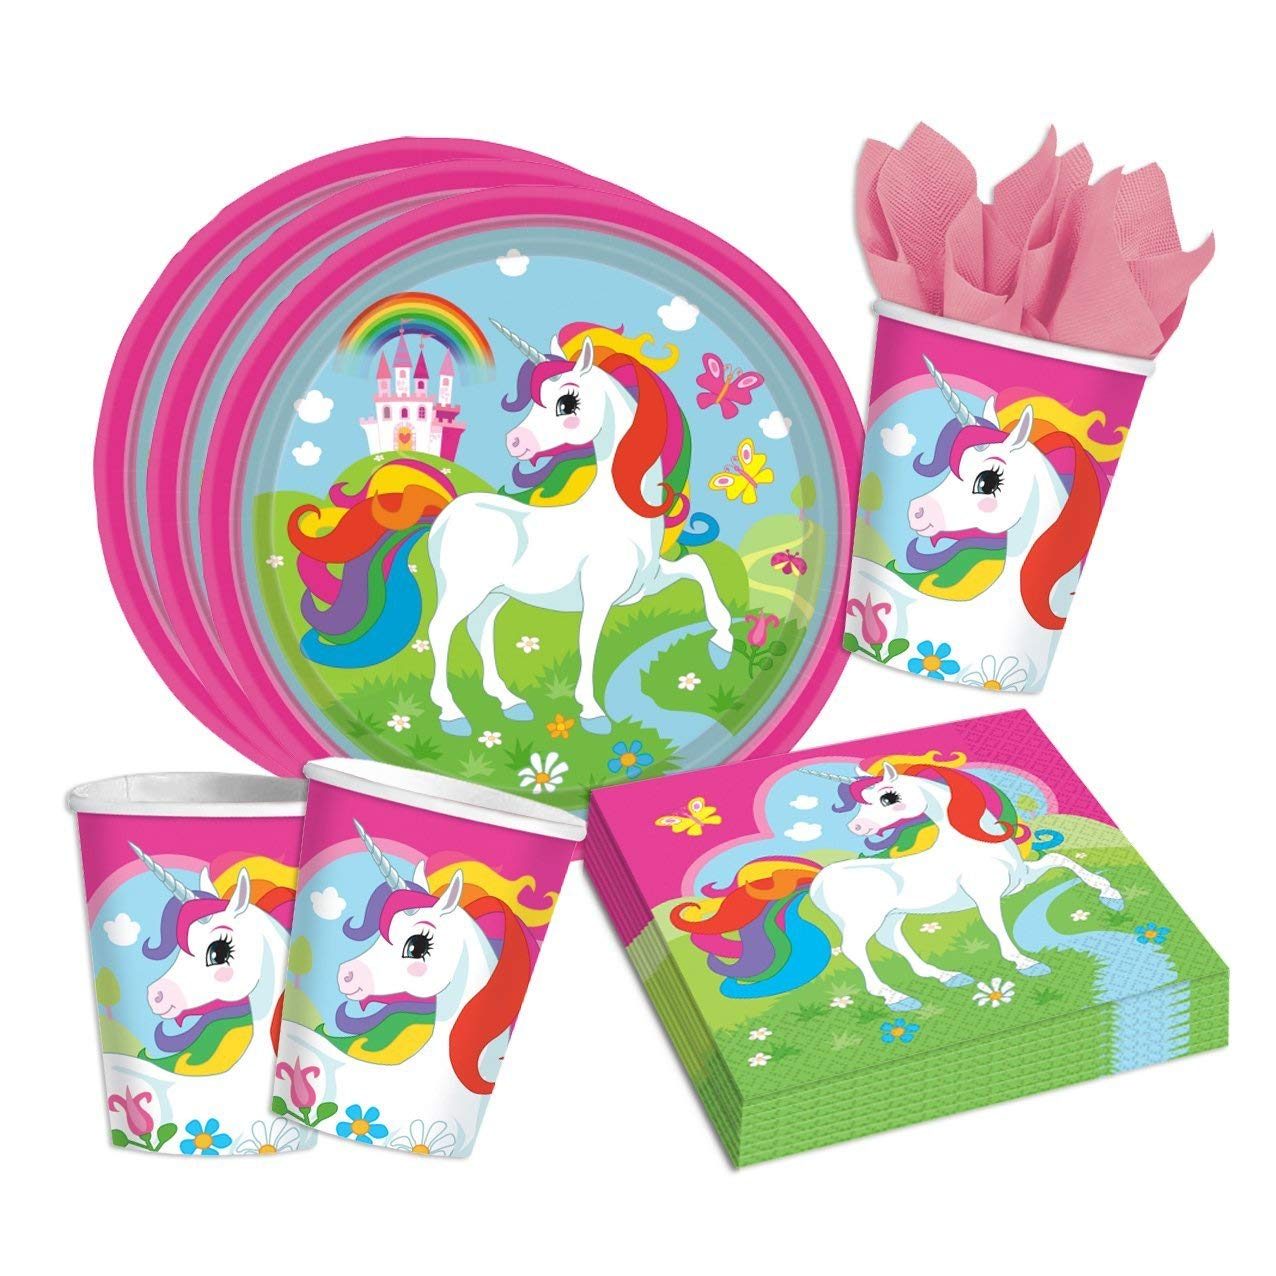 52 piece party set Unicorn (Amscan) - Unicorn - Plate Mug Serviettes for 16 children